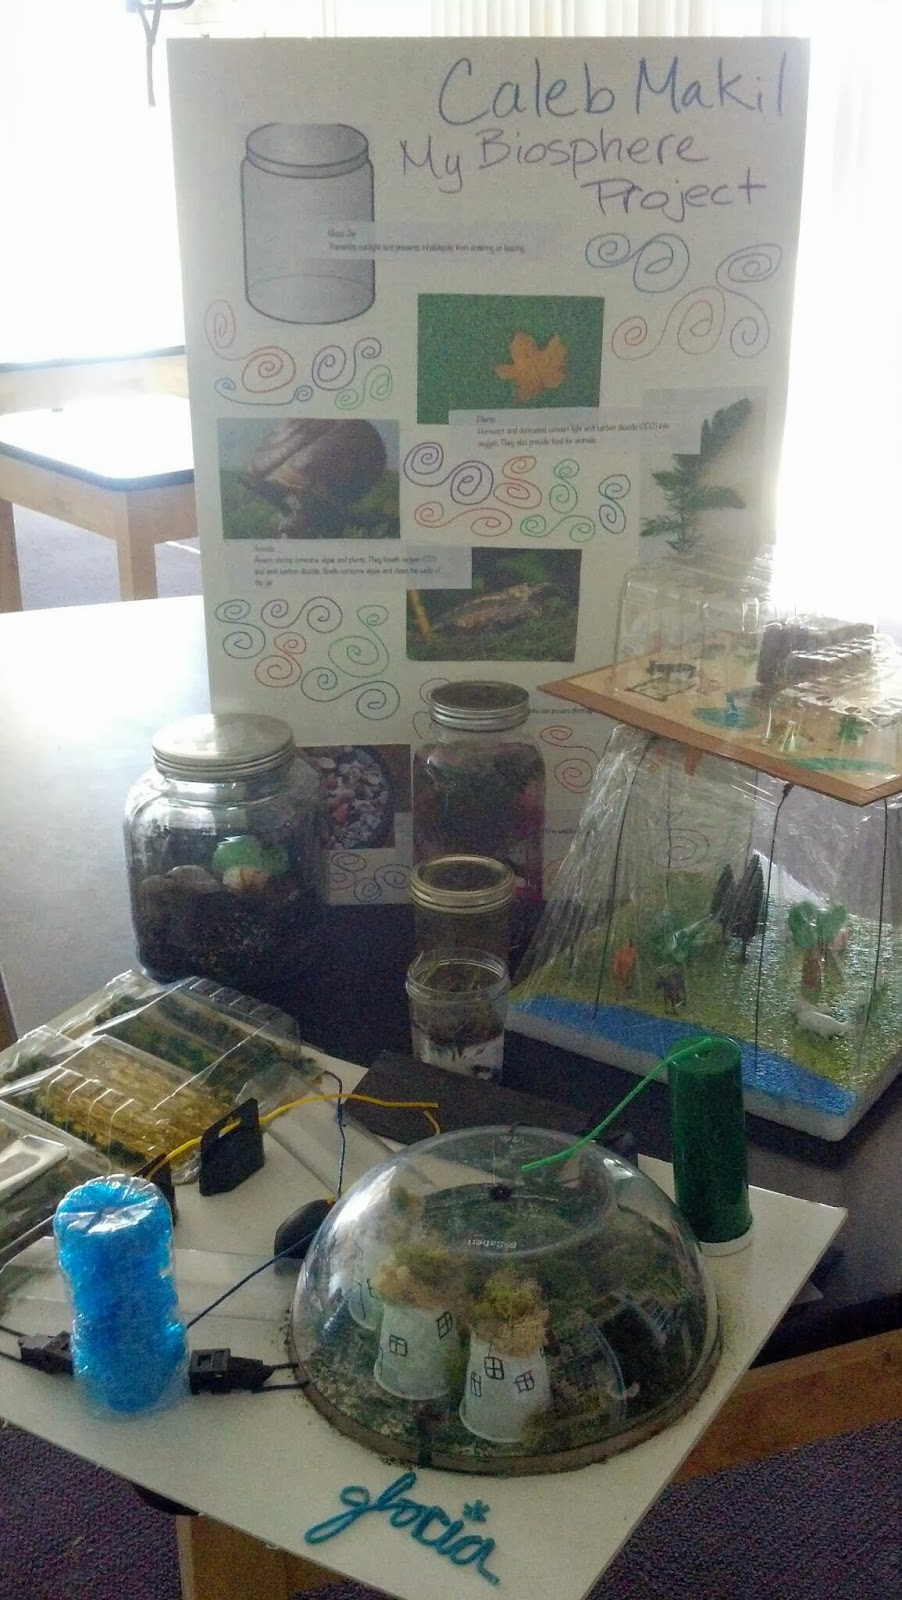 Water Cycle Projects For 7th Grade Biosphere projects